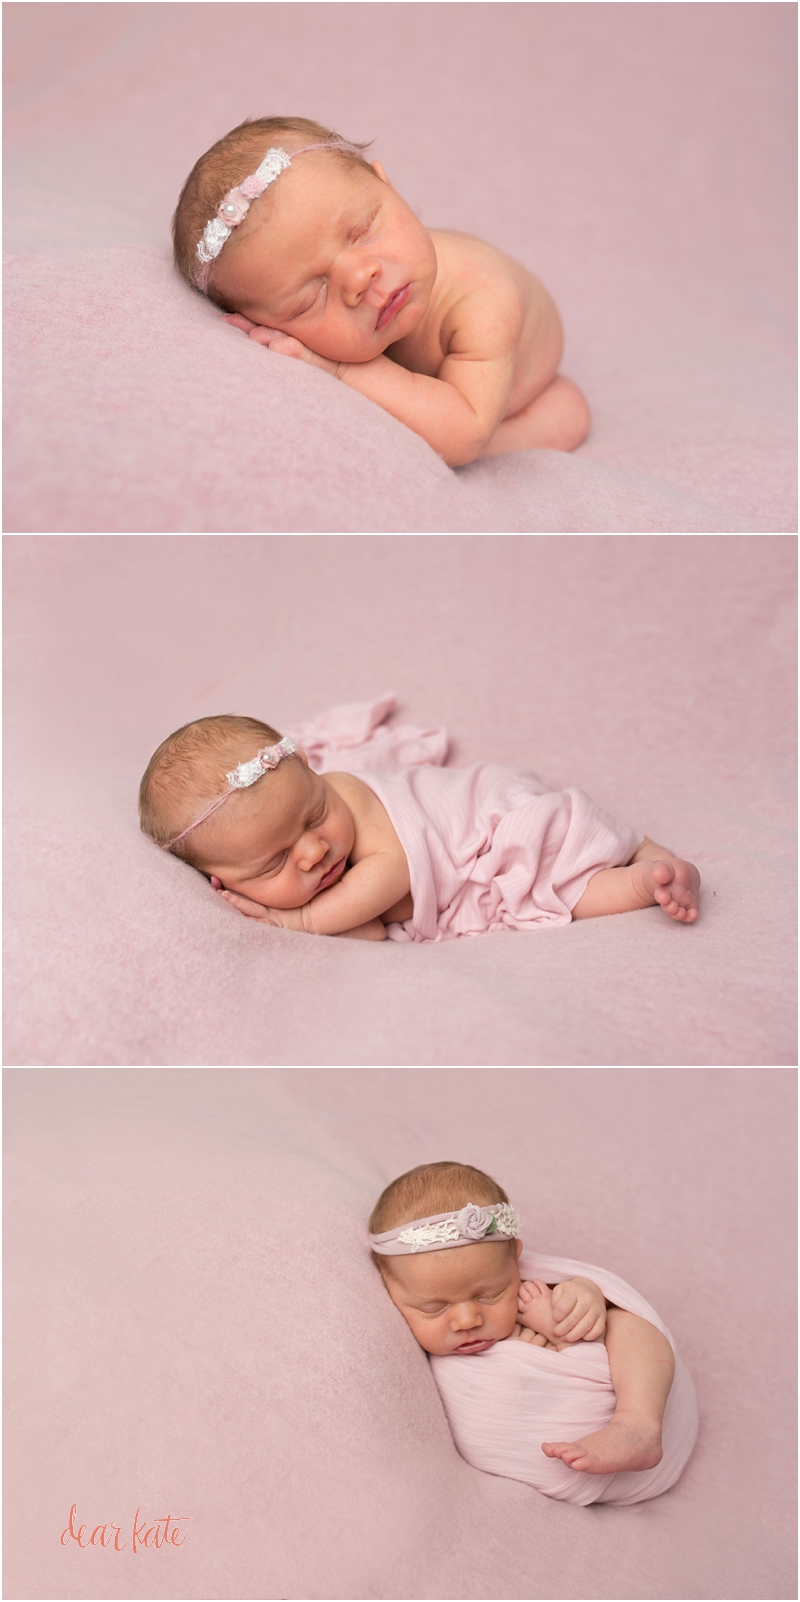 Loveland photography studio newborn pictures